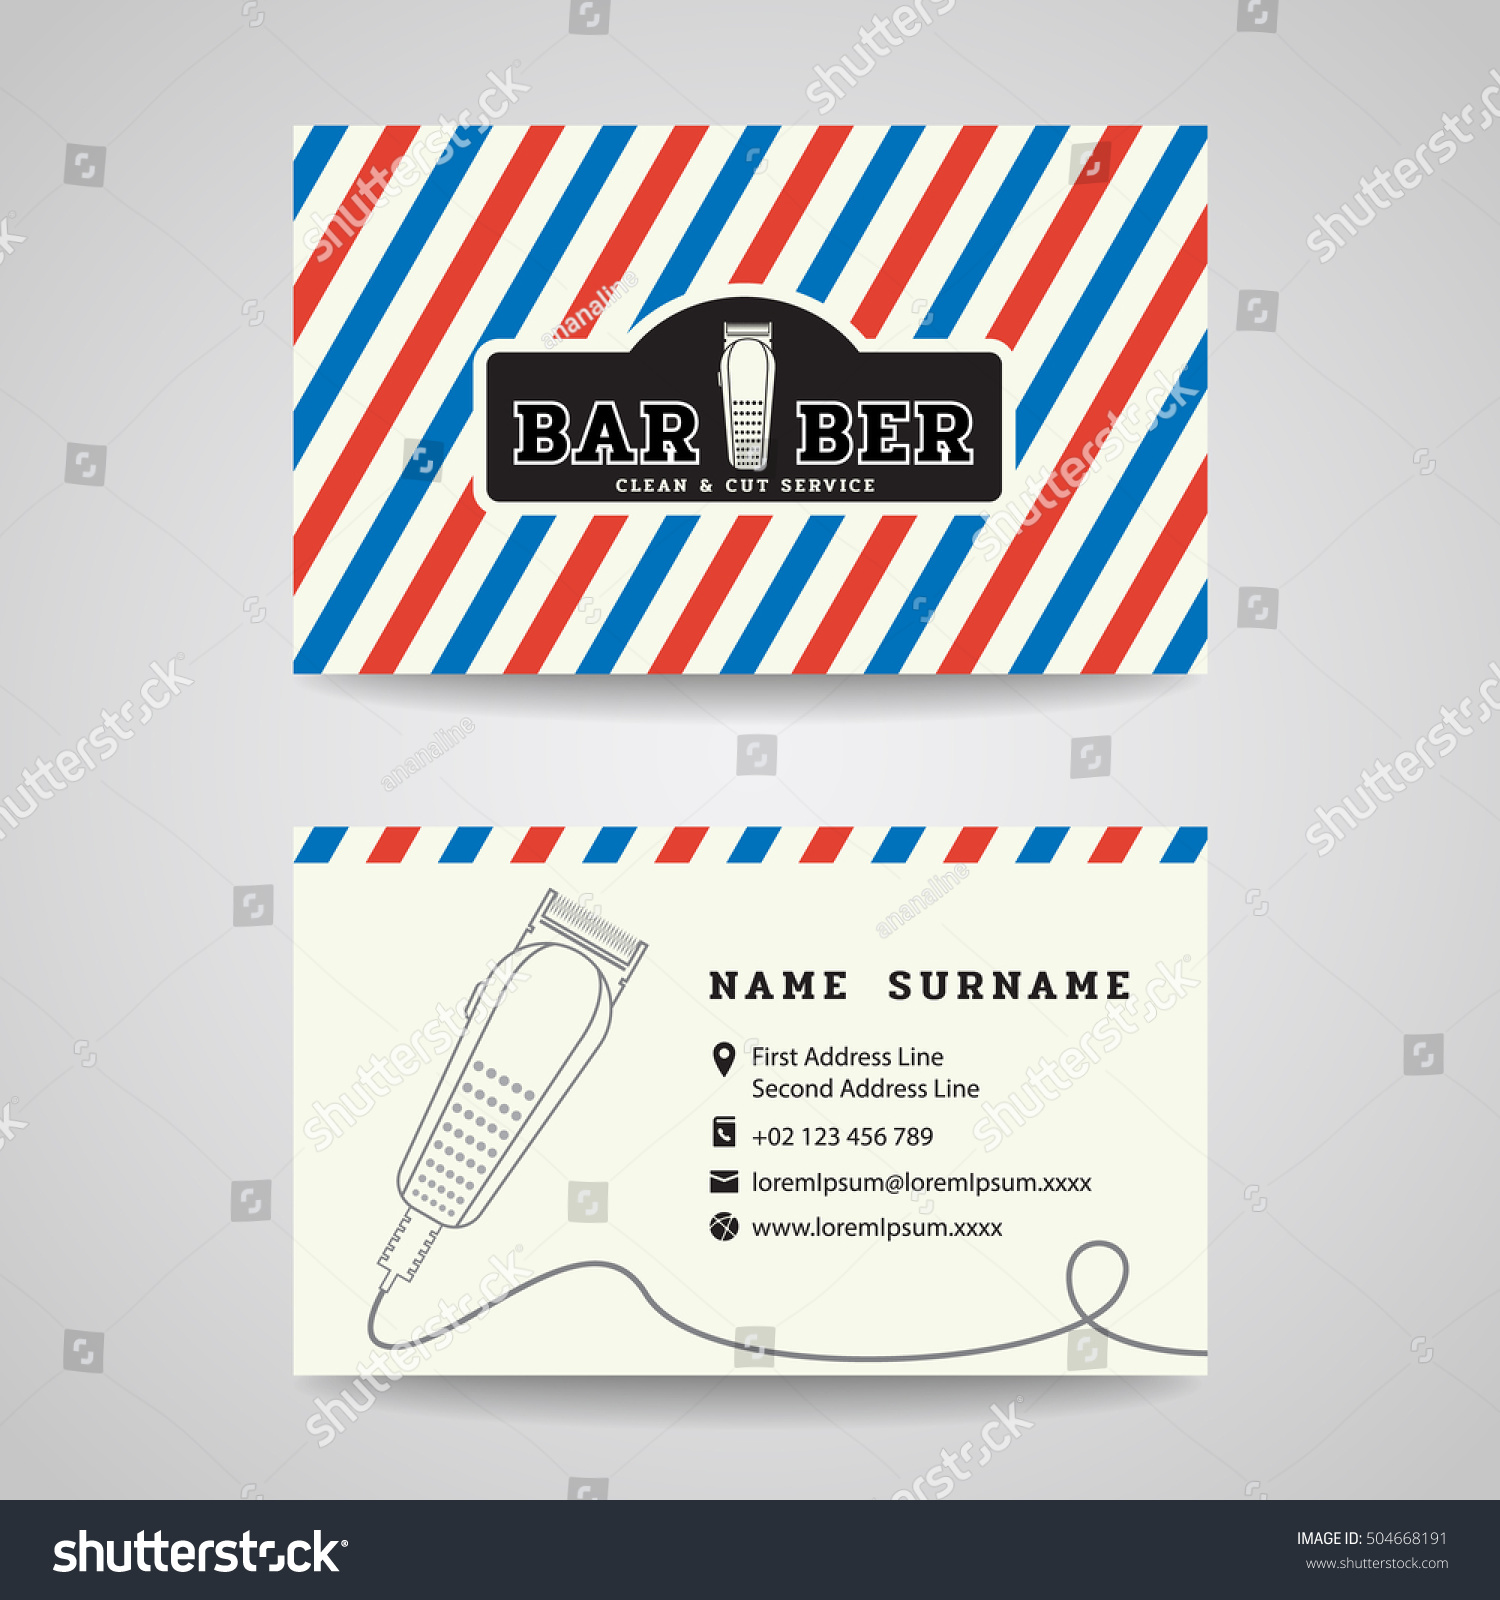 Barber business card images free business cards business card barber shop hair clippers stock vector 504668191 business card barber shop and hair clippers magicingreecefo Images